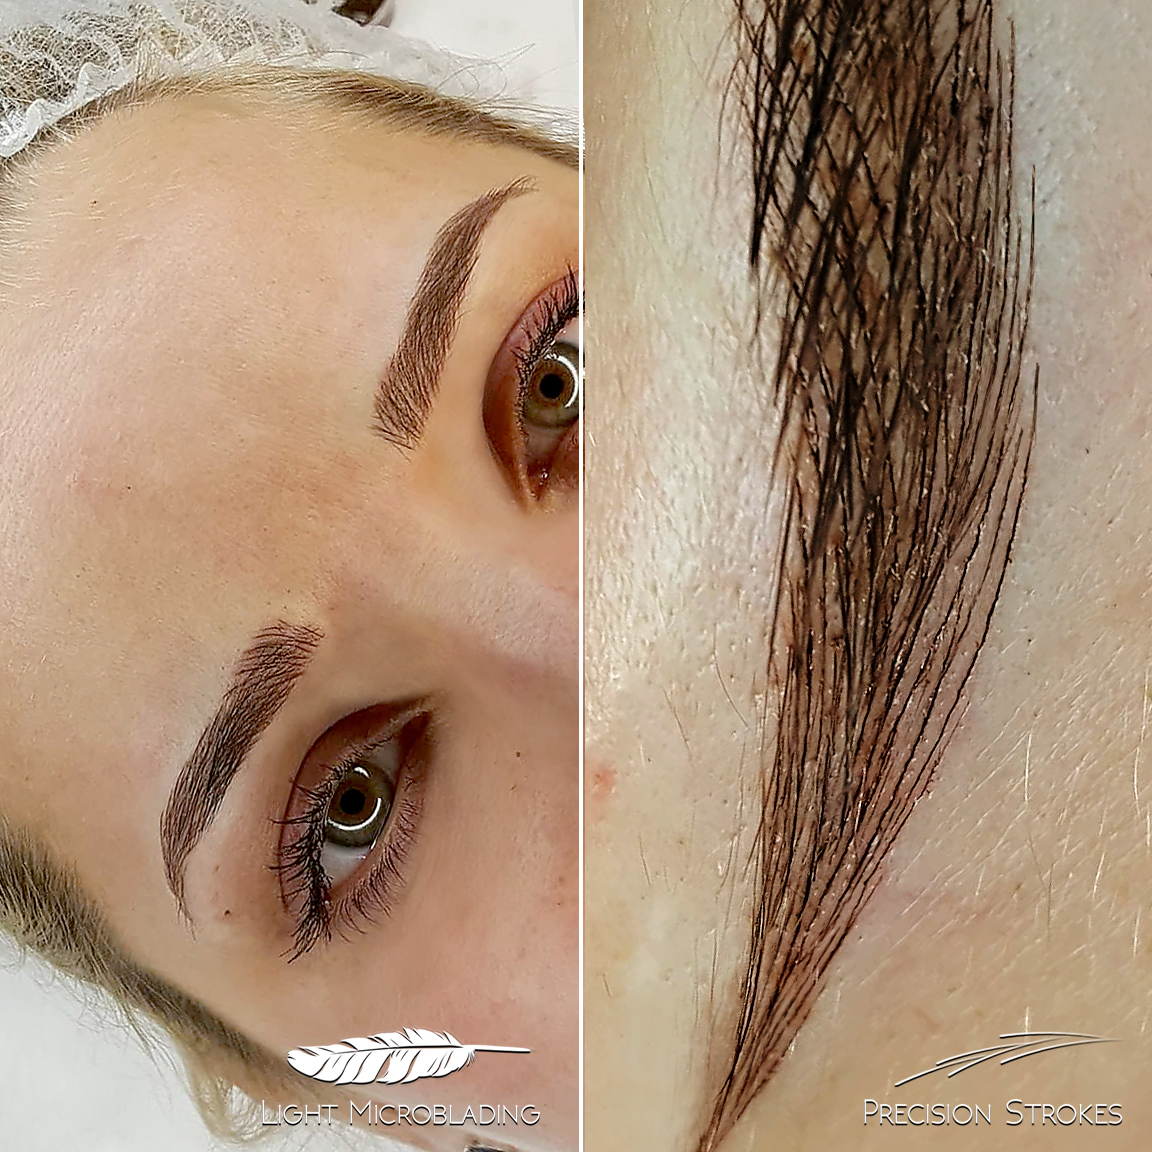 In this picture here you can see the technique behind the brow perfection. The stokes are extremely thin, sharp and precise. Using the new Light microblaing it is possible to take brow precision to the next level.